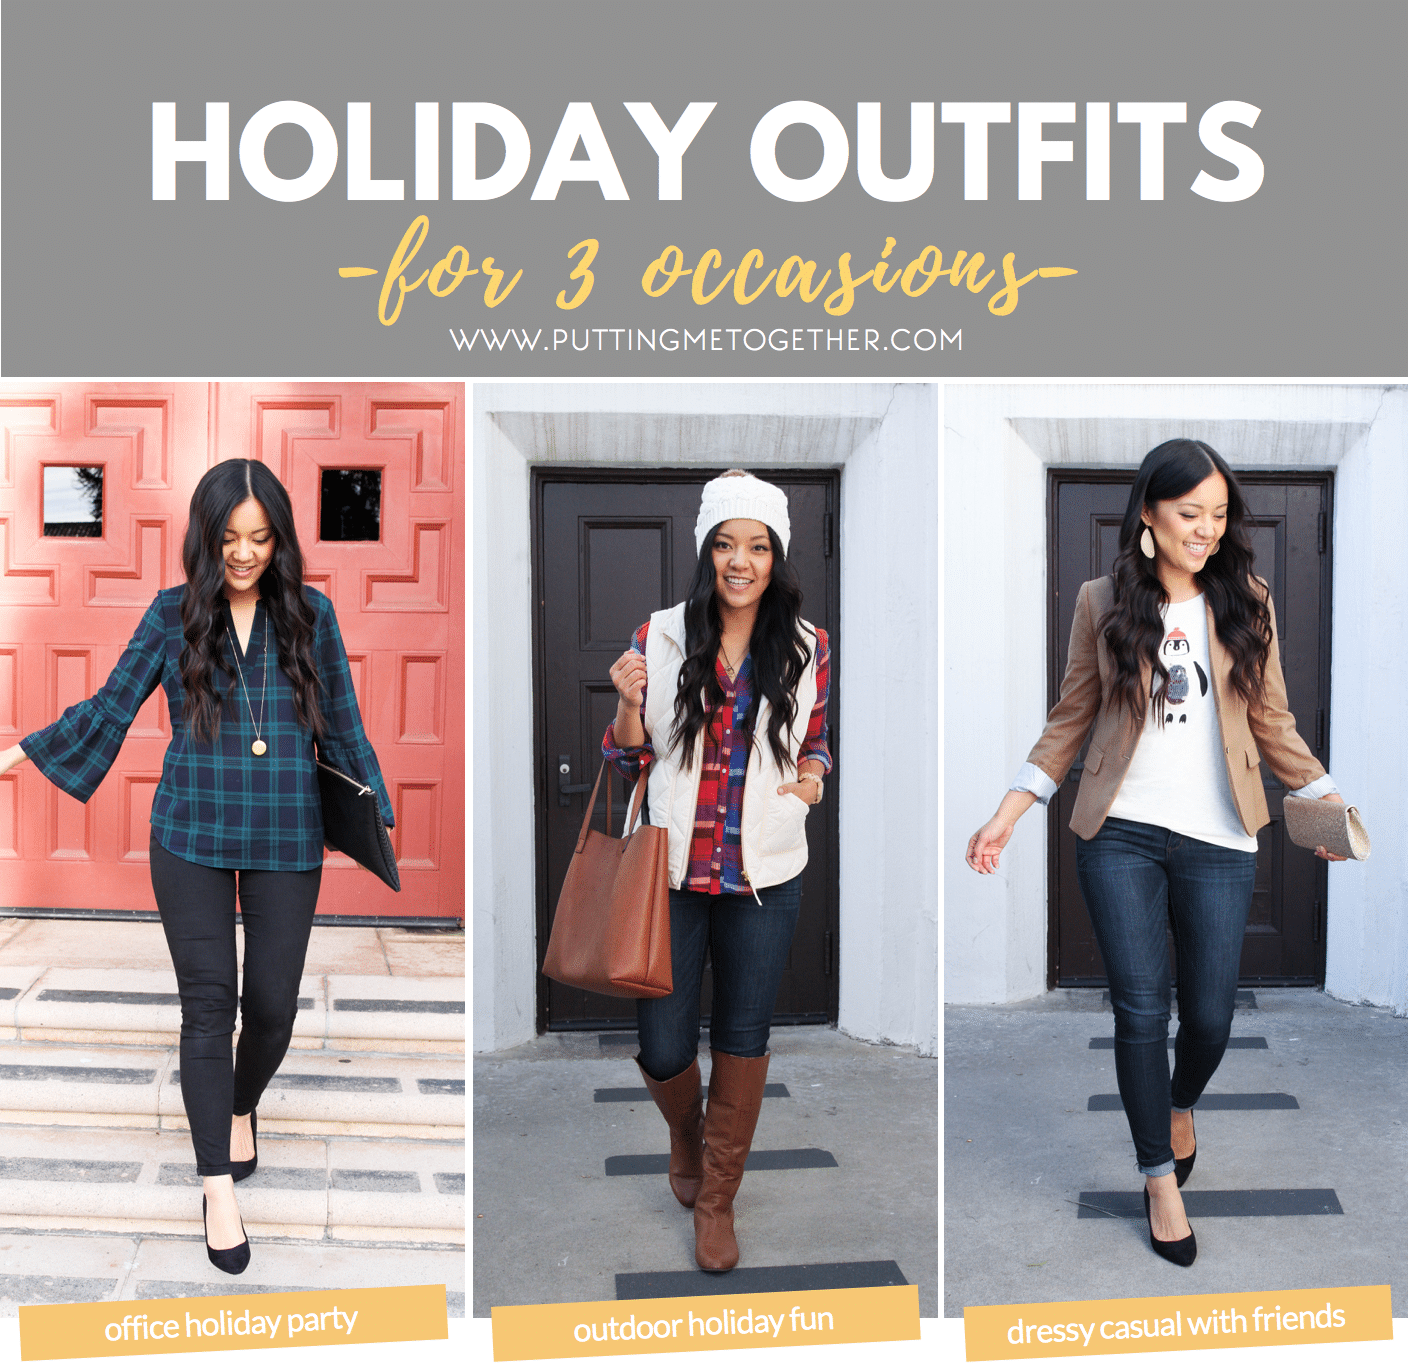 Outfits to Wear for Different Holiday Activities